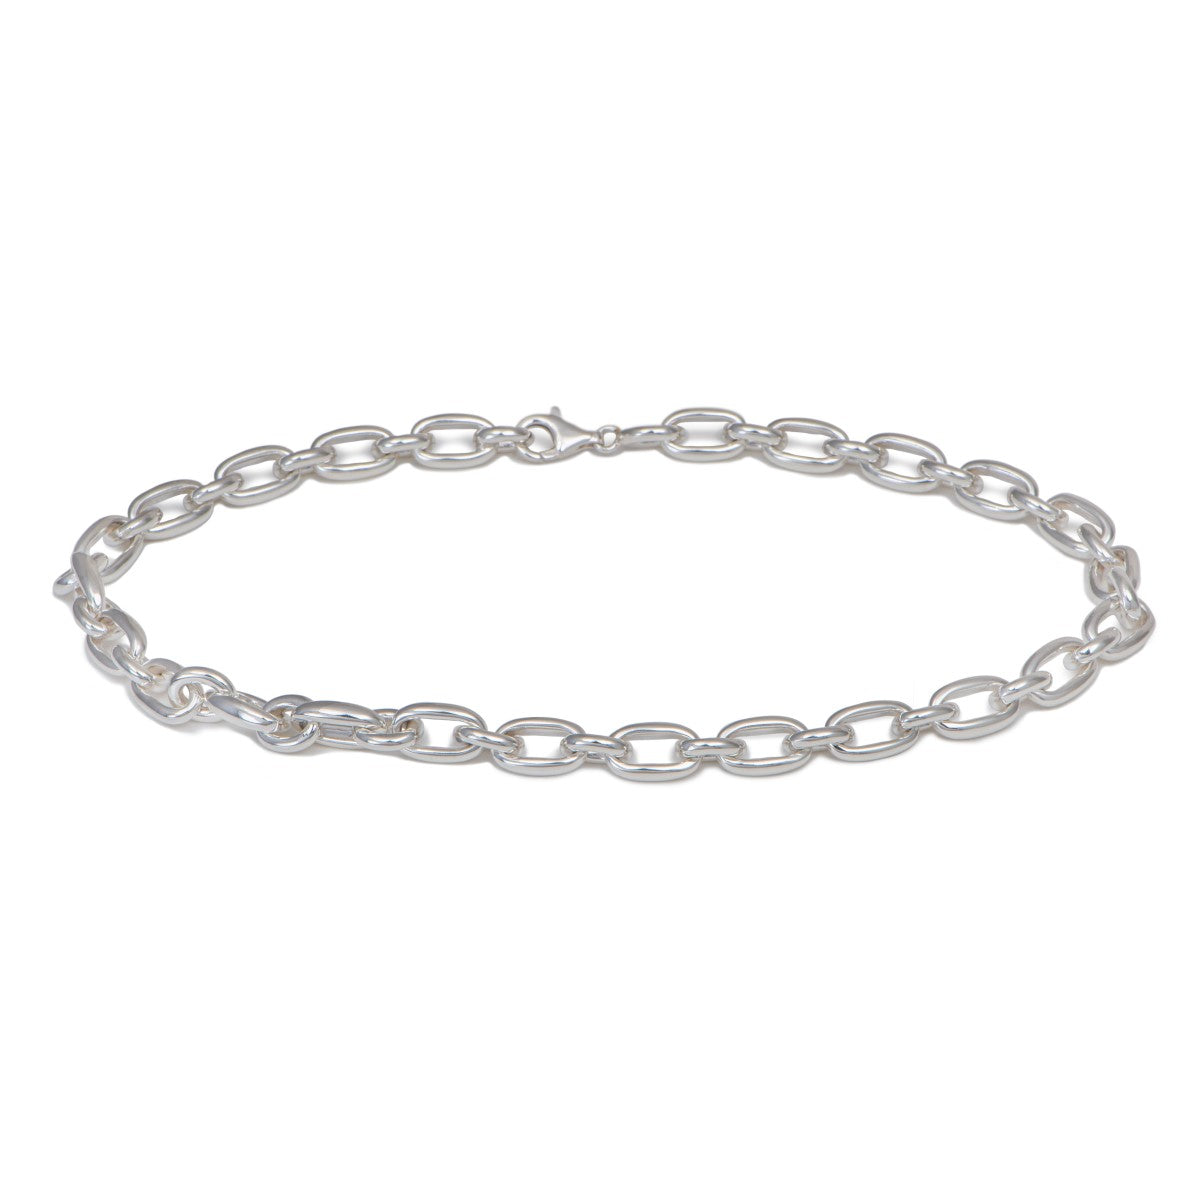 Statement Sterling Silver Link Necklace with Oval Links